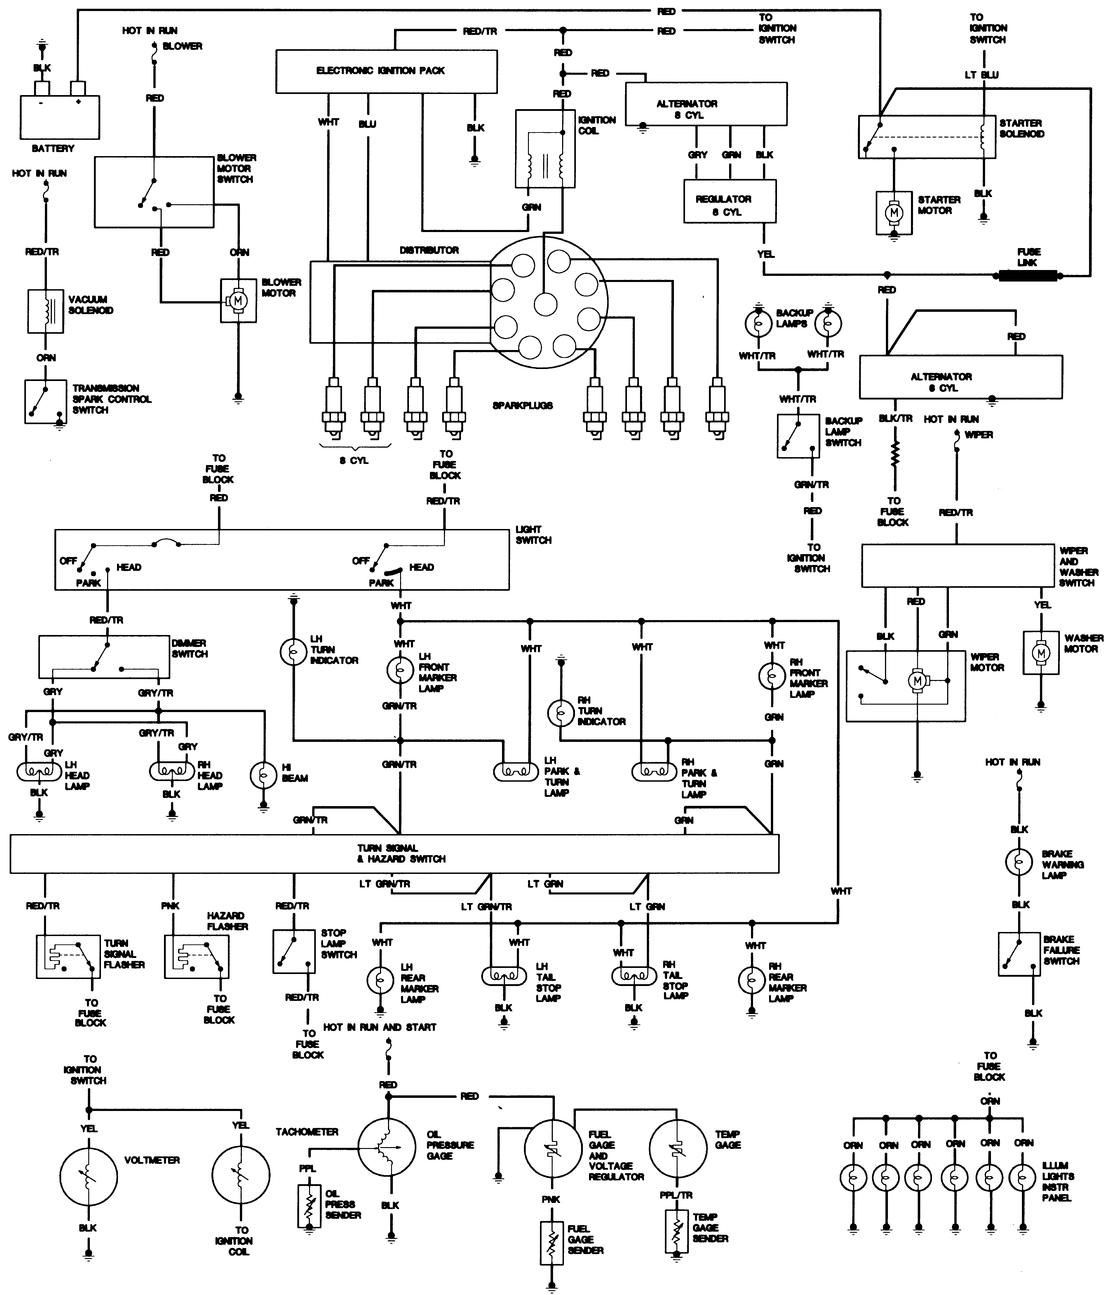 hight resolution of jeep cj5 ignition wiring wiring diagram centre 80 jeep cj5 ignition wiring